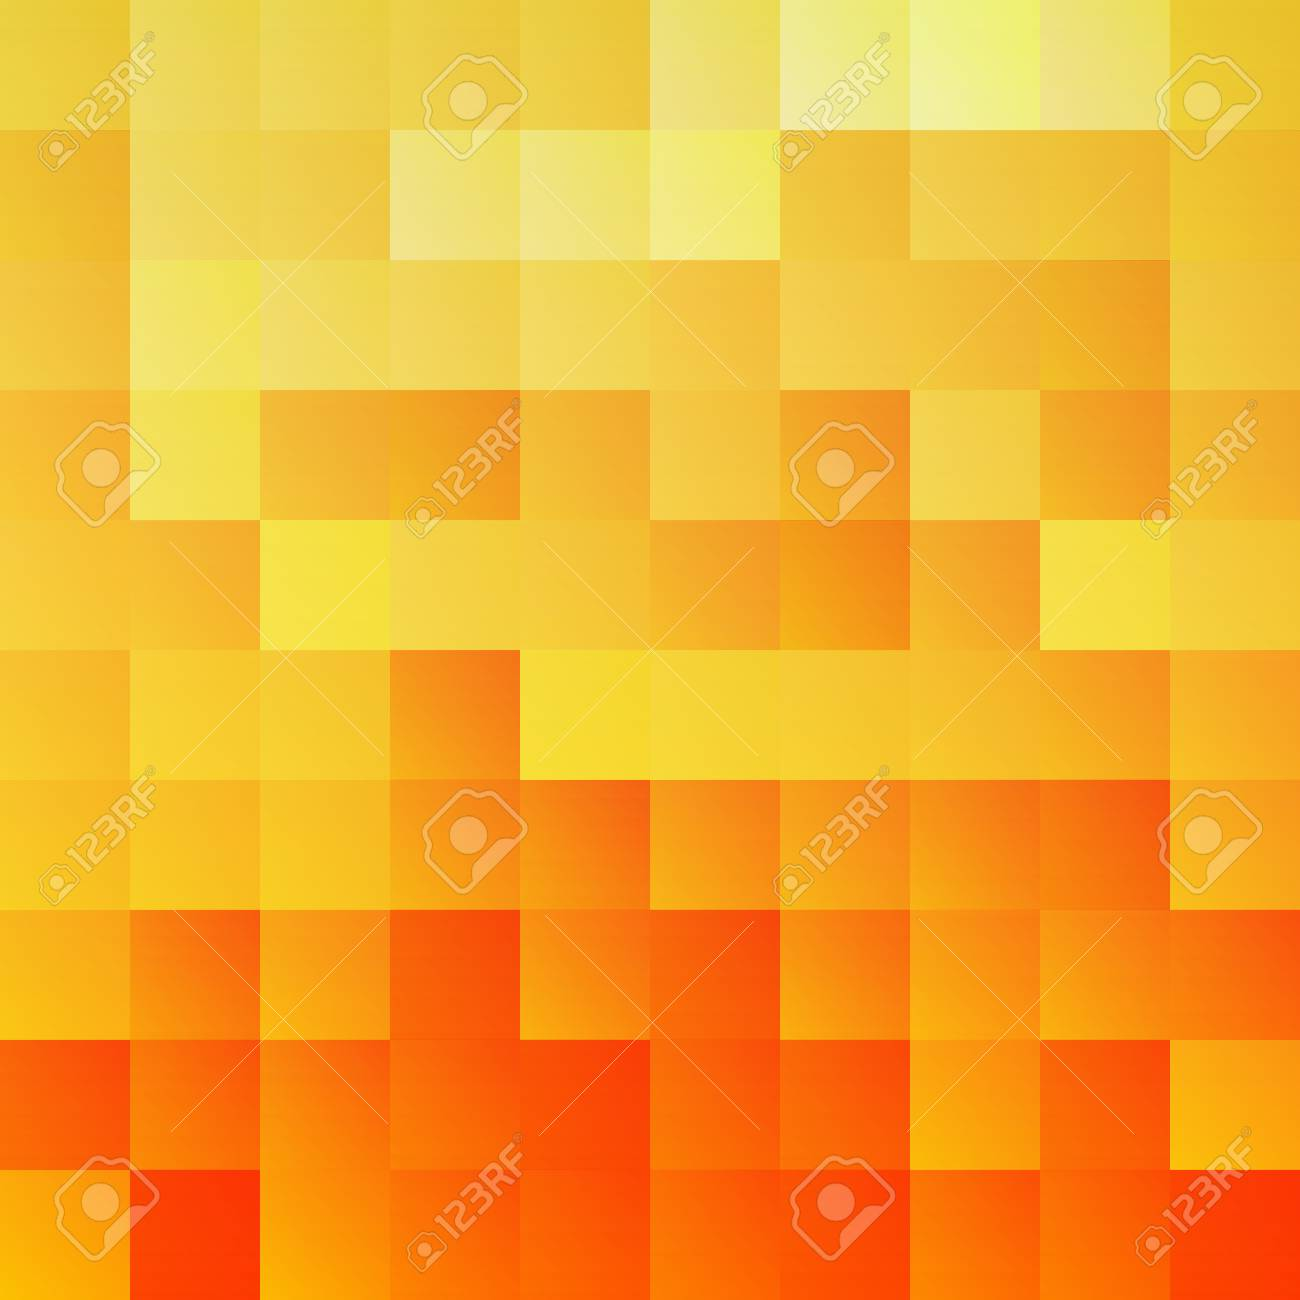 Abstract Yellow Wallpaper Pattern As A Background For Your Design